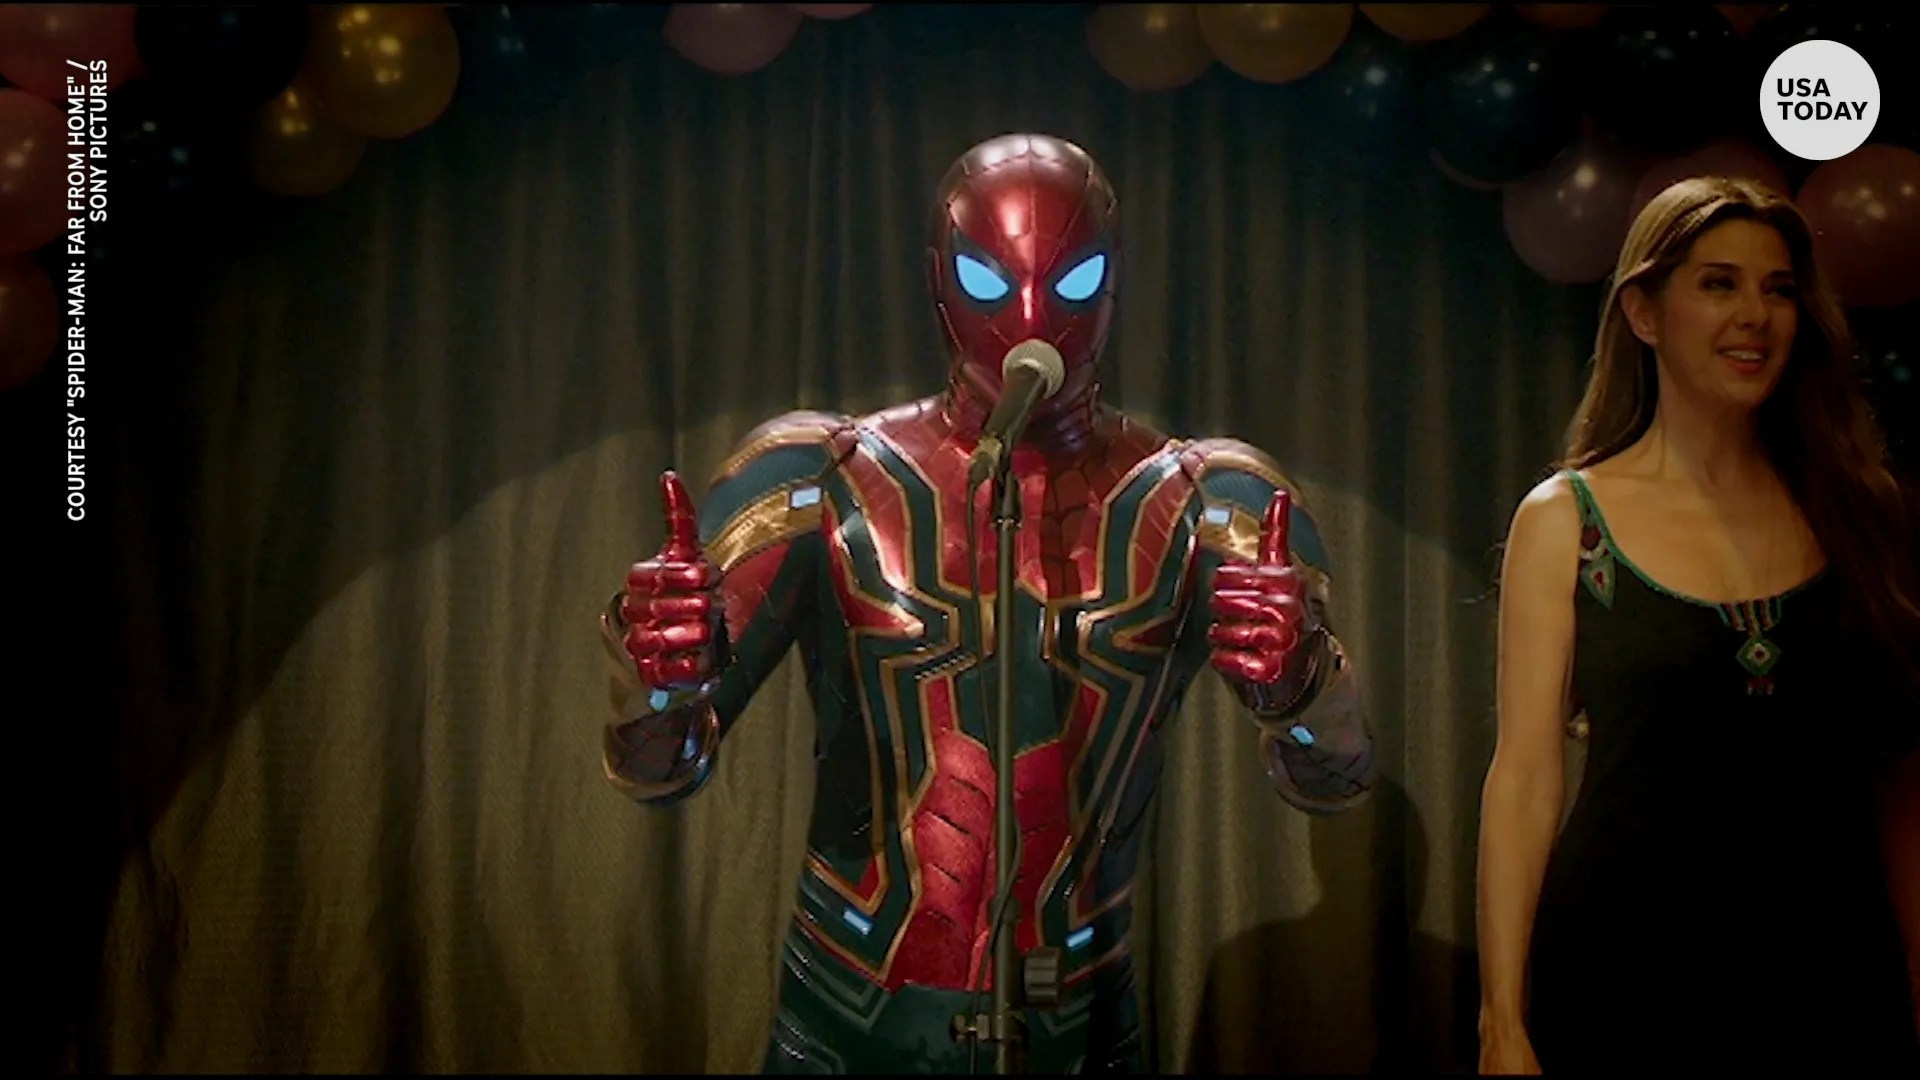 spider man may exit